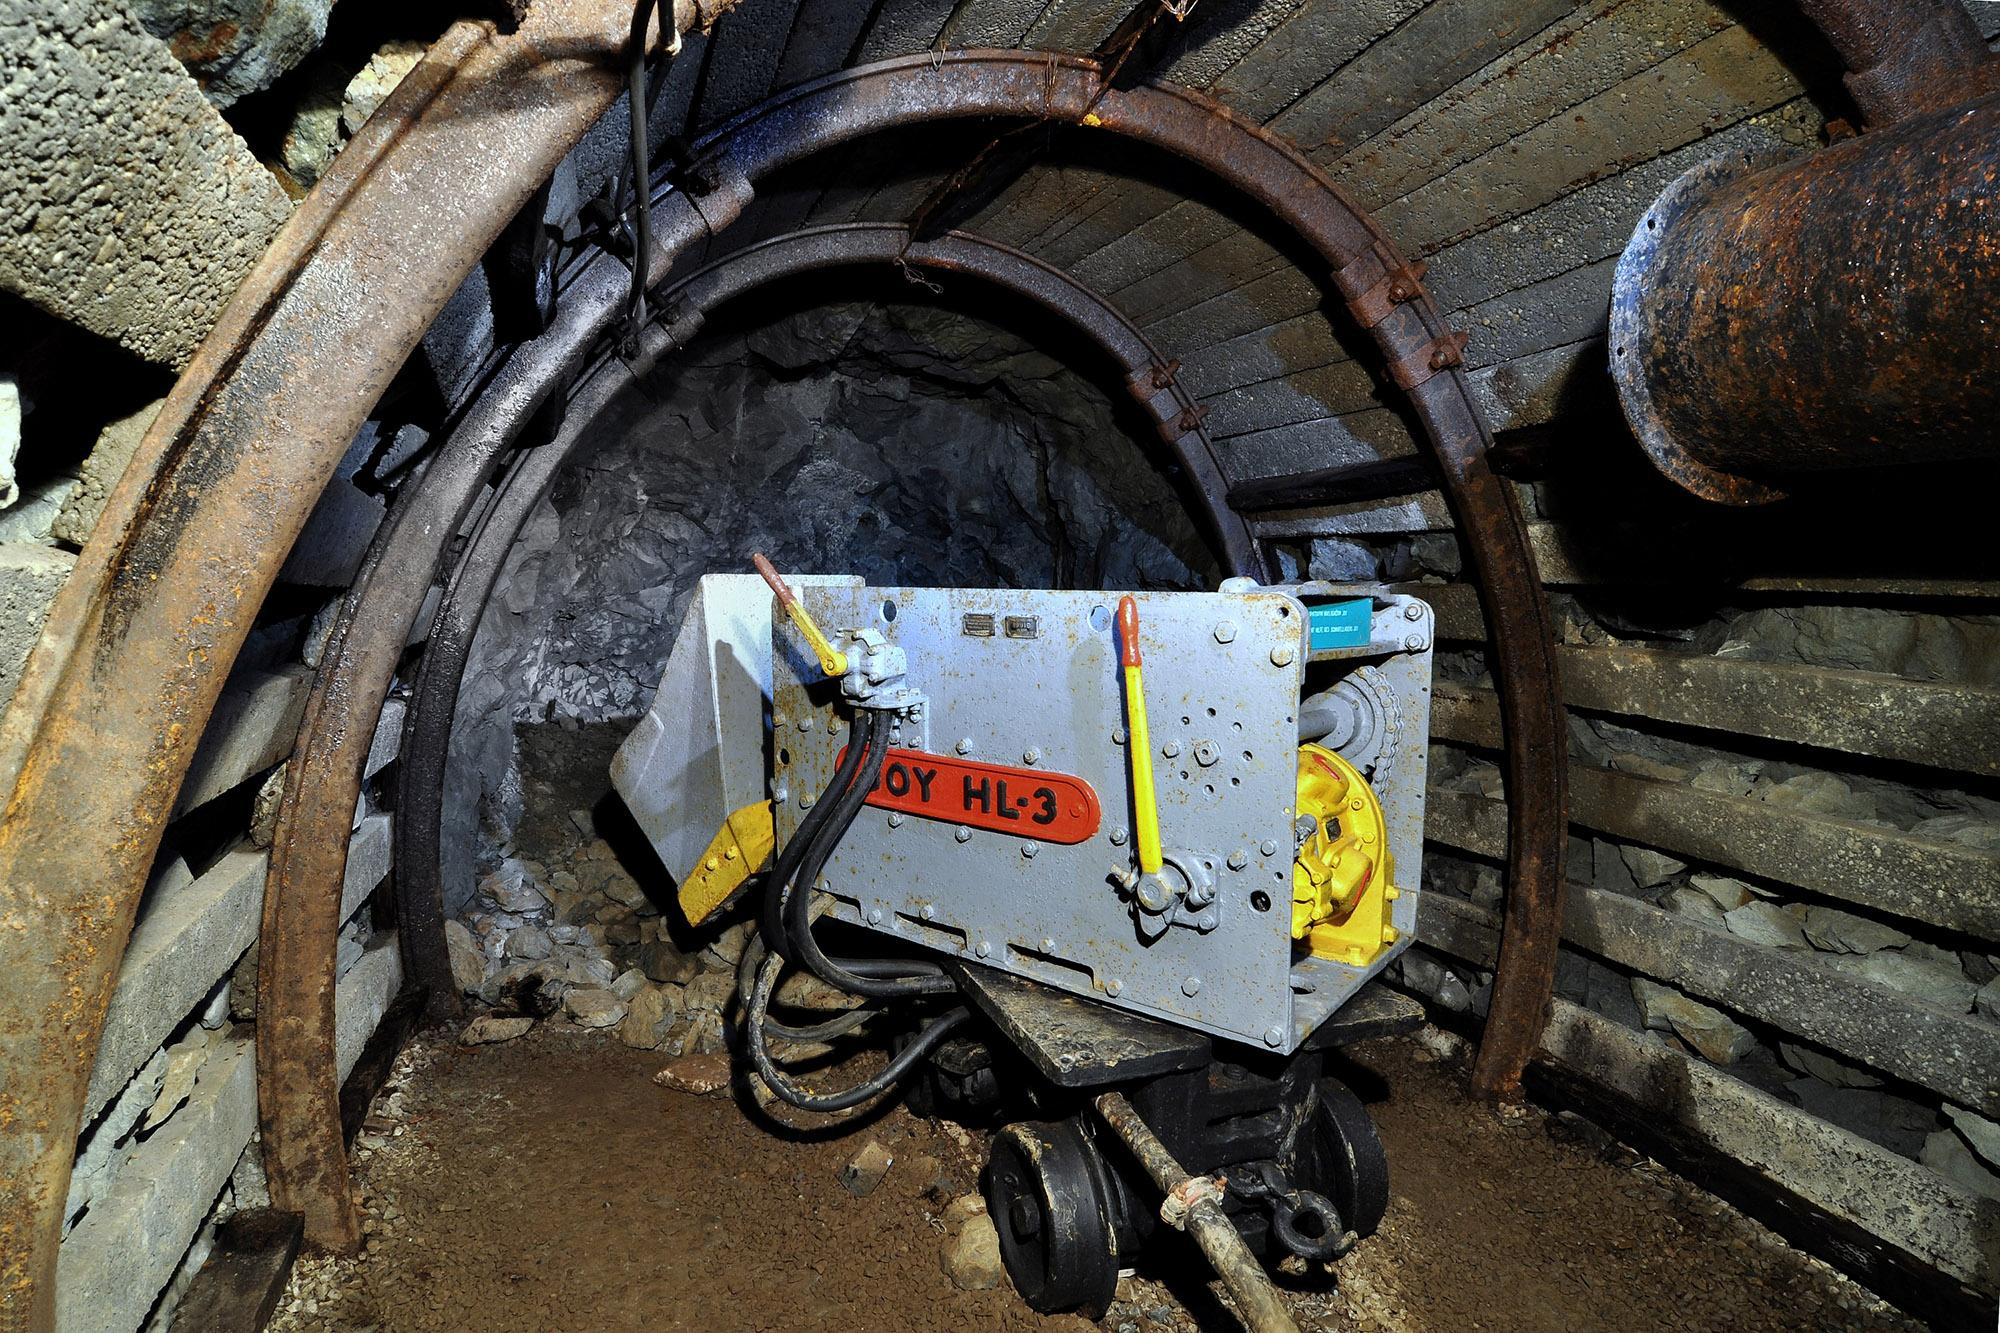 Pieces of broken rock had to be loaded onto mine cars. This mining loader is an example of modern mining technology. – © Lubo Lužina